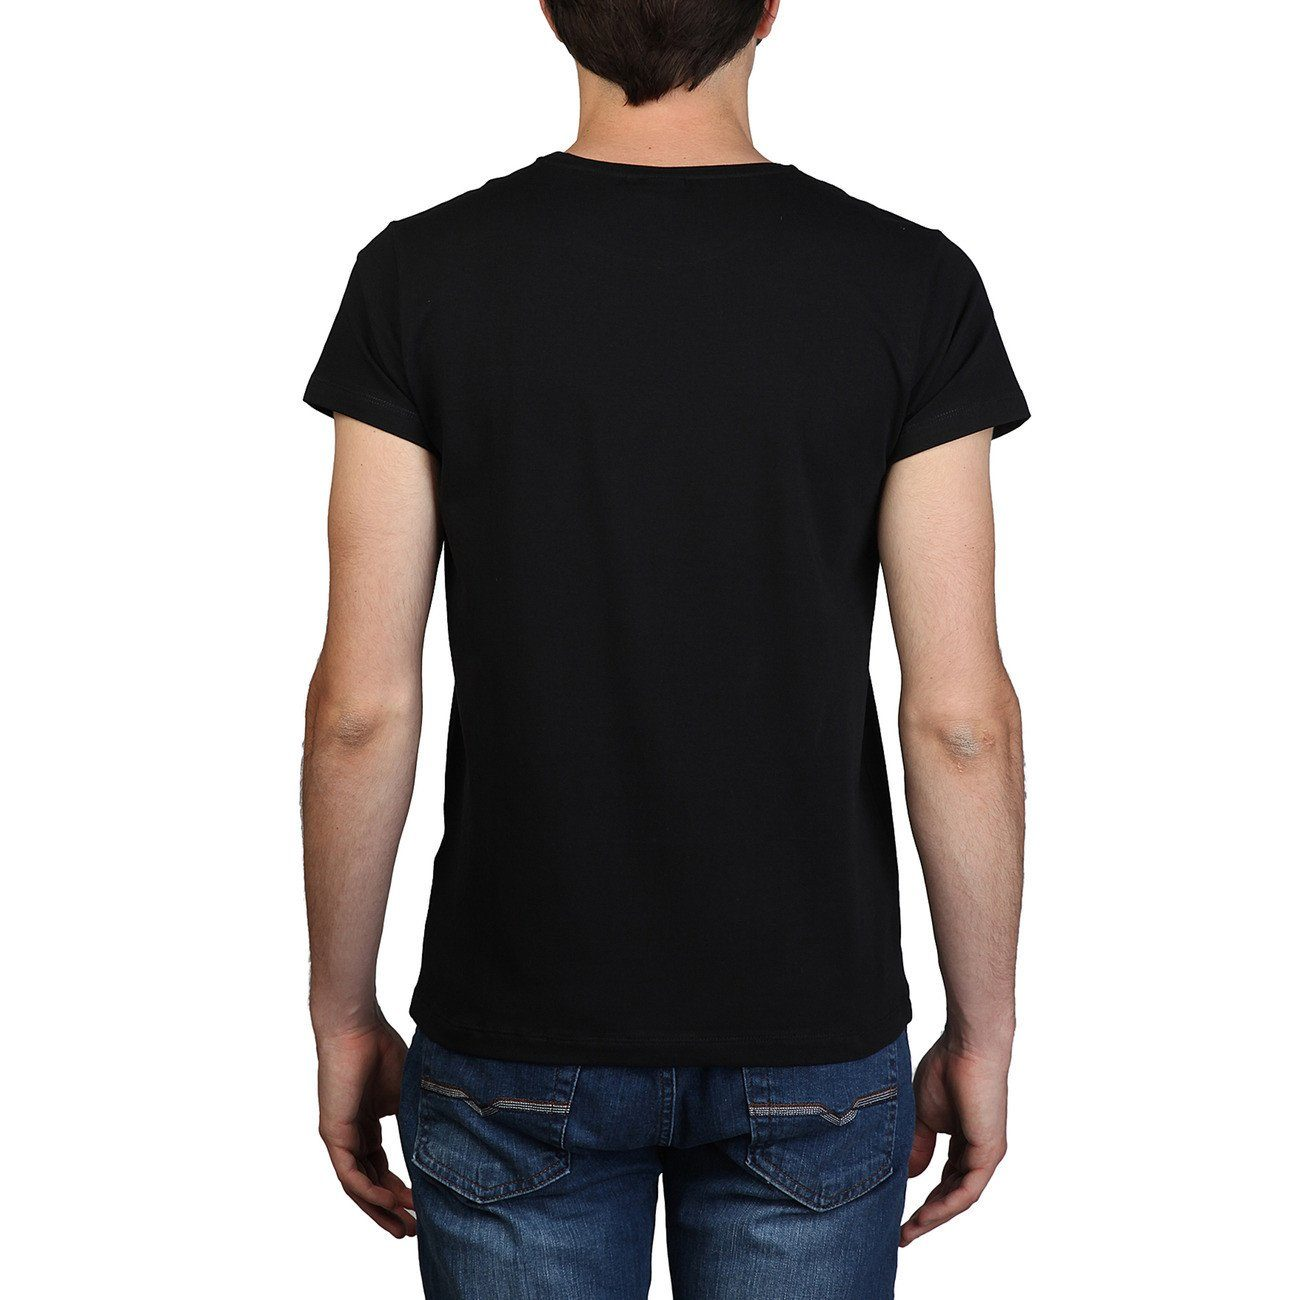 CALVIN KLEIN - fitted t-shirt - Black - 1 - Ninostyle